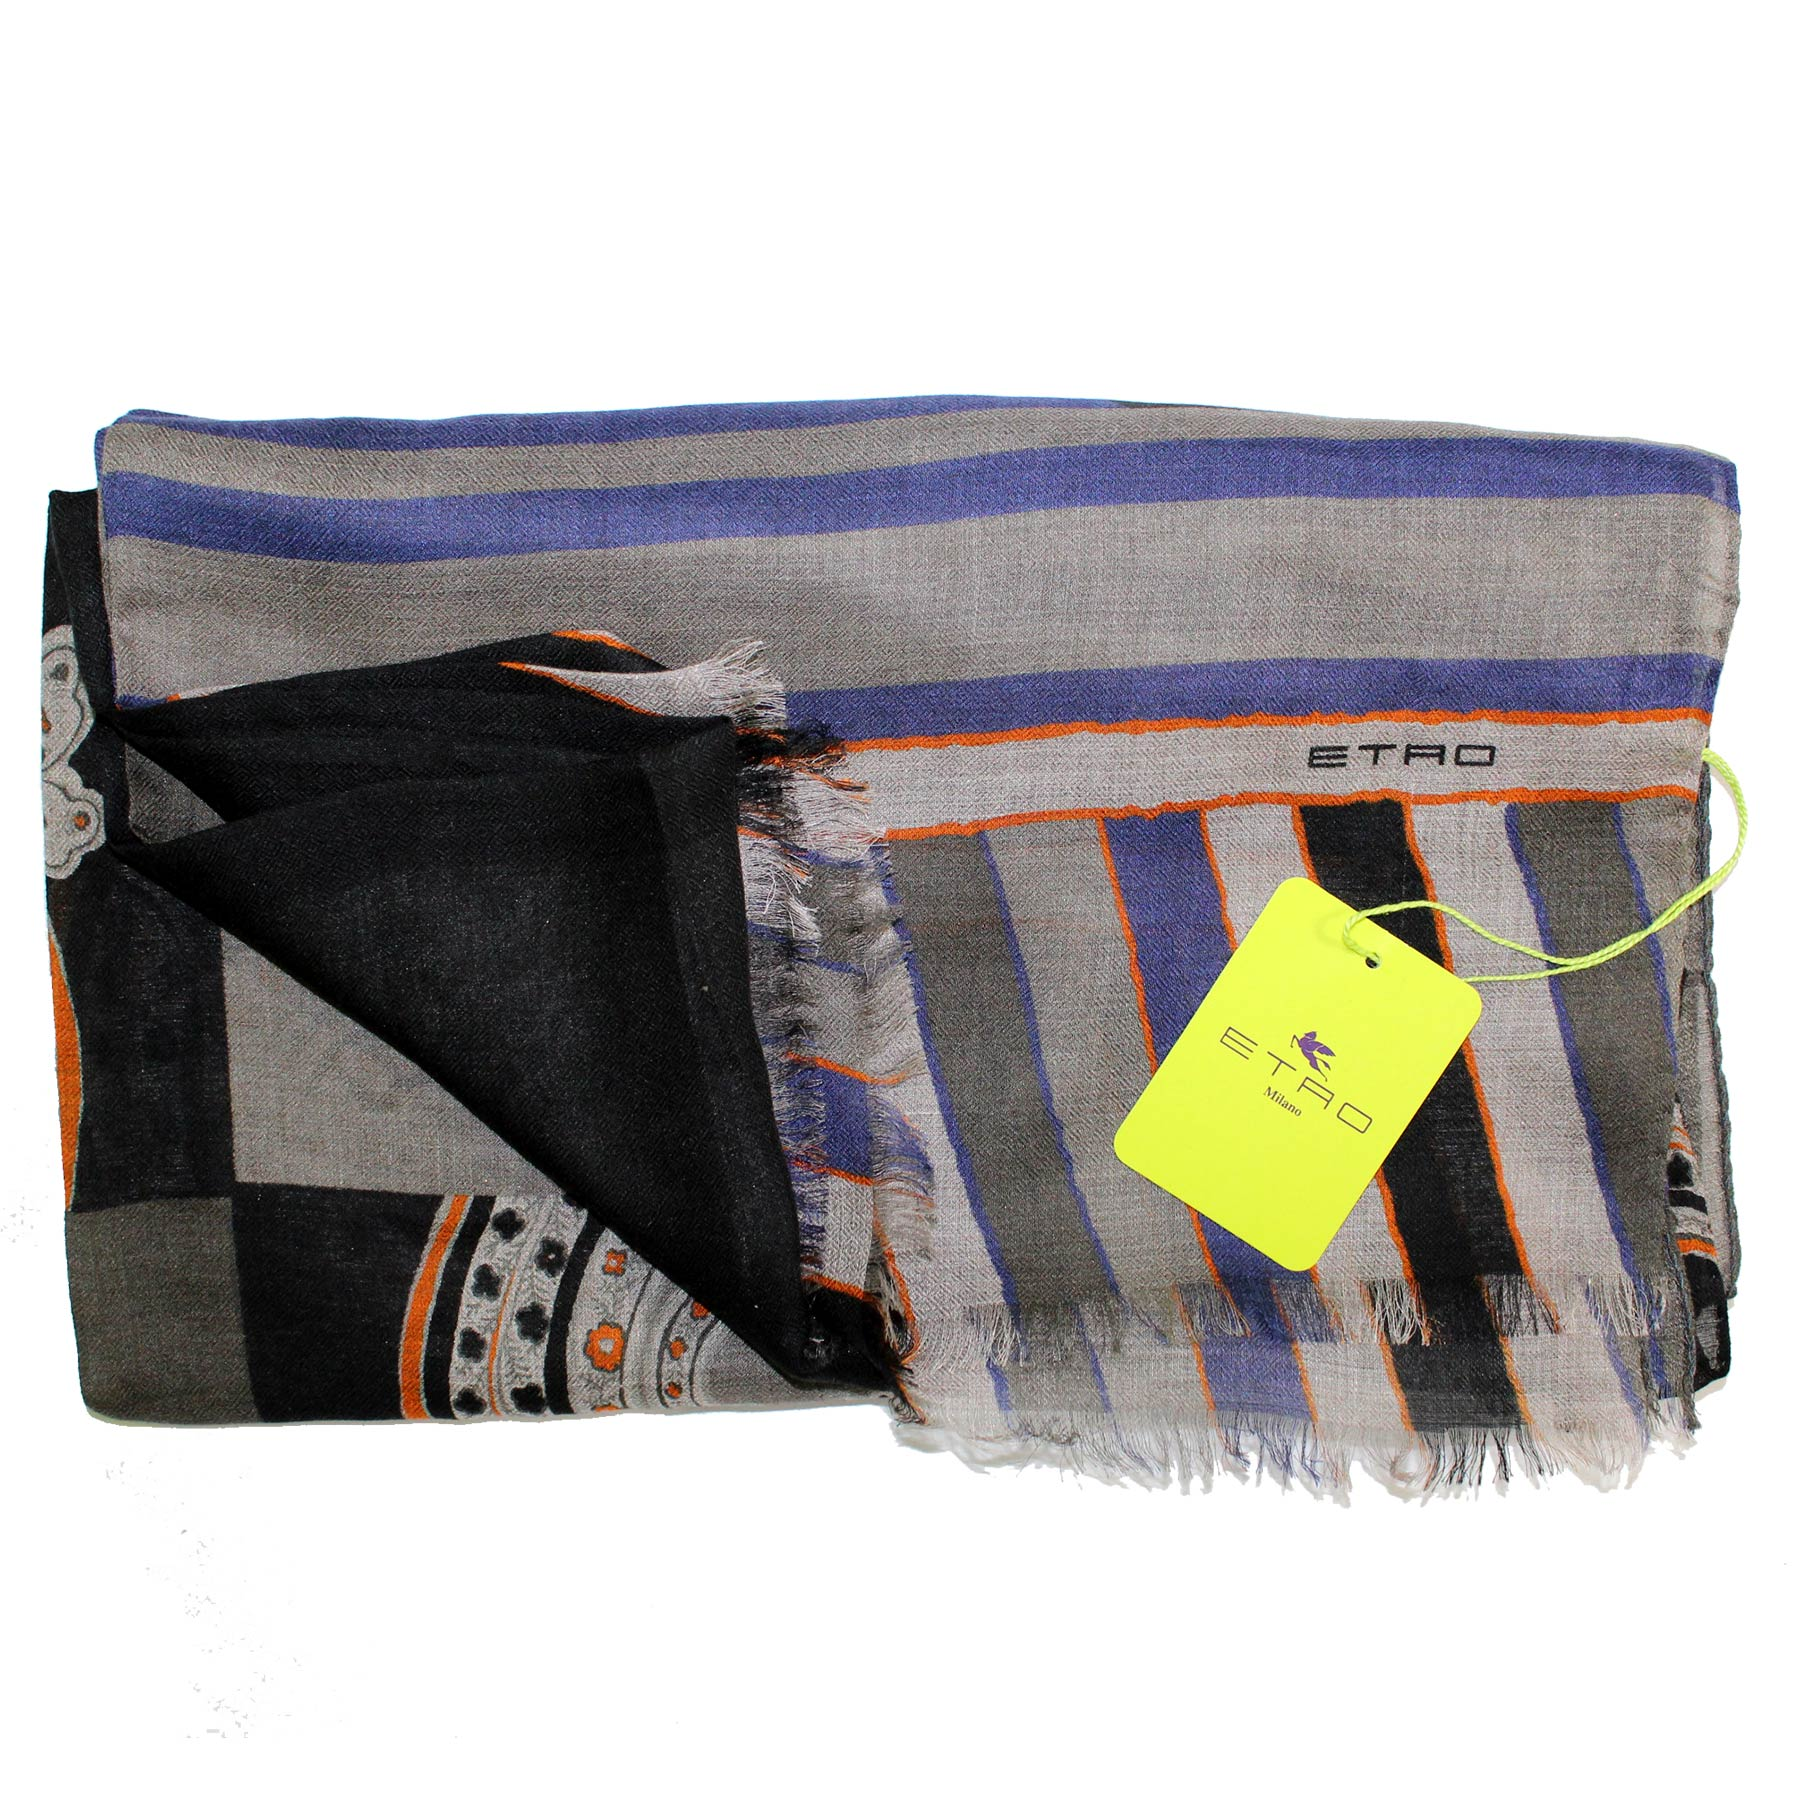 Etro Scarf Gray Purple Design - Modal Cashmere Shawl